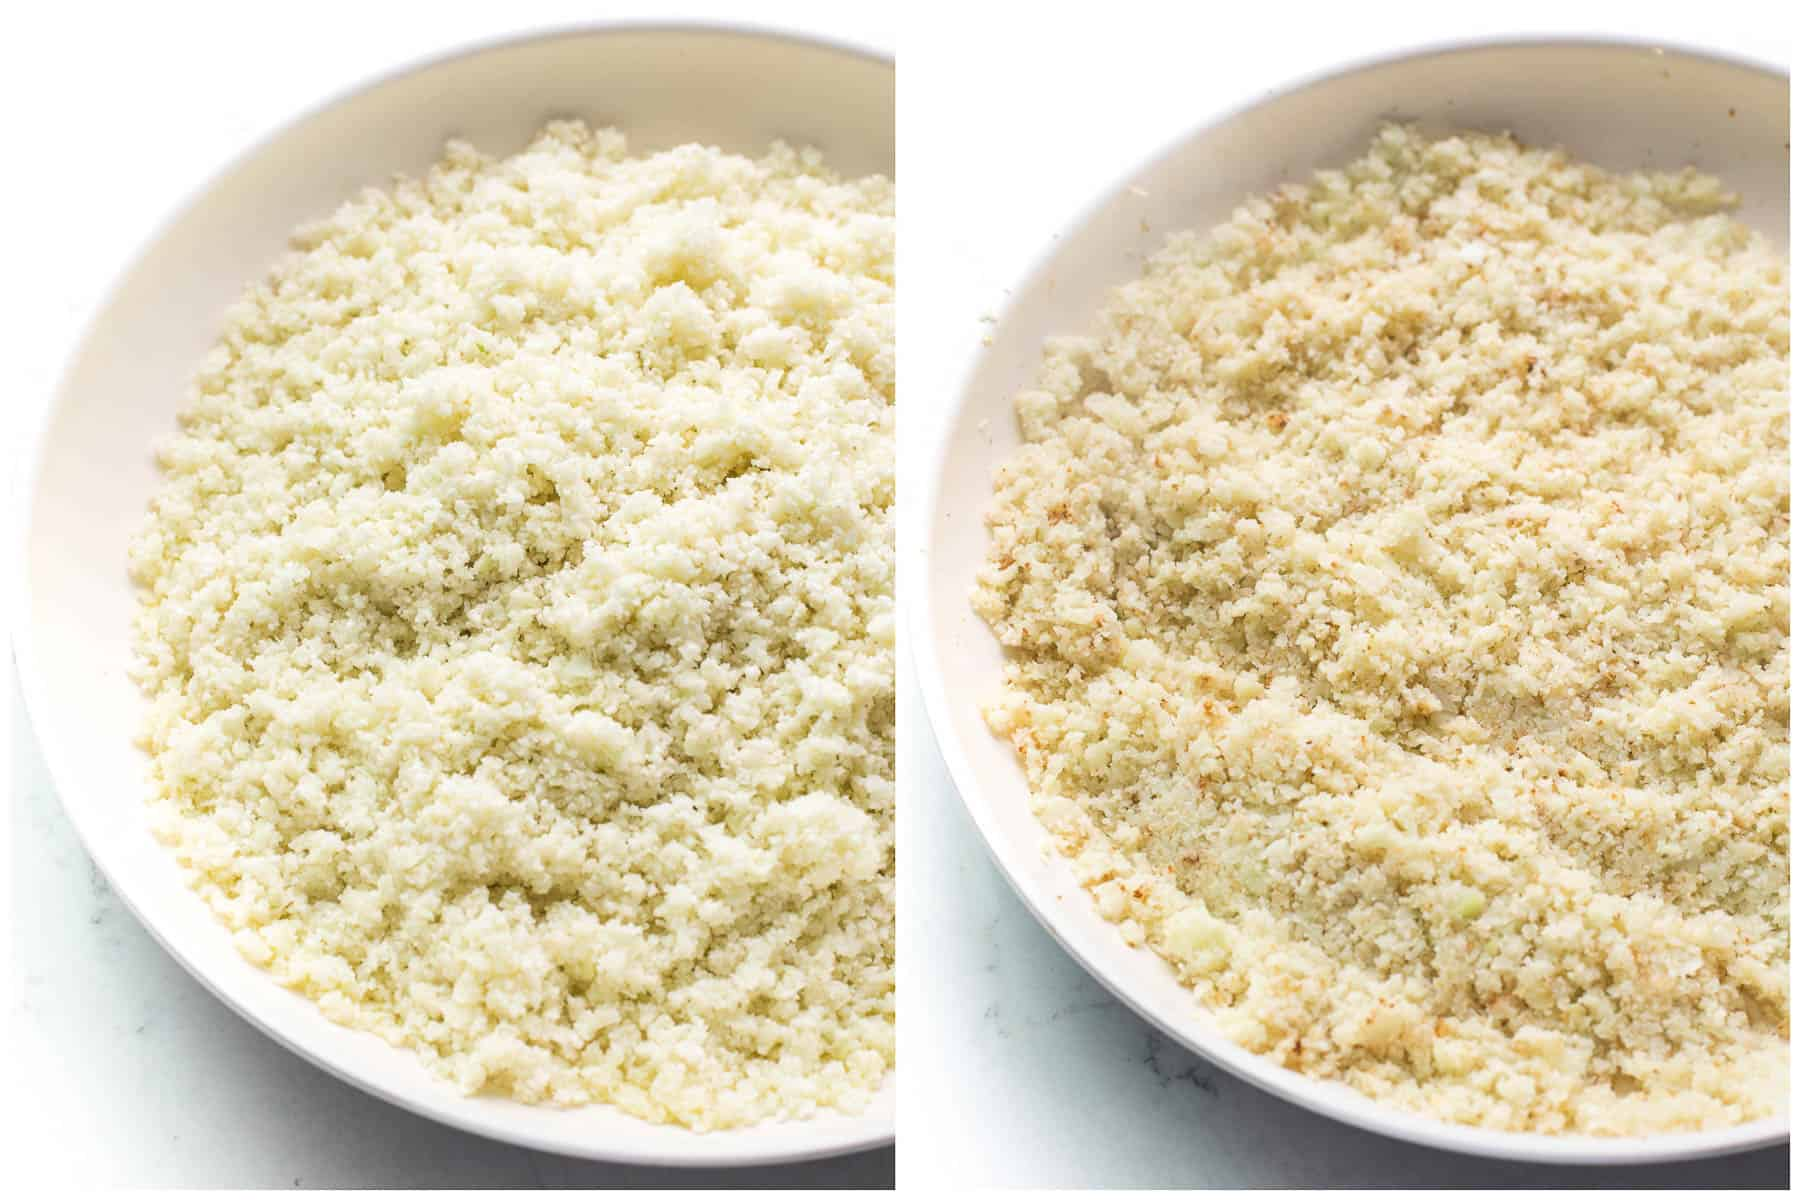 cooking cauliflower rice in a white pan